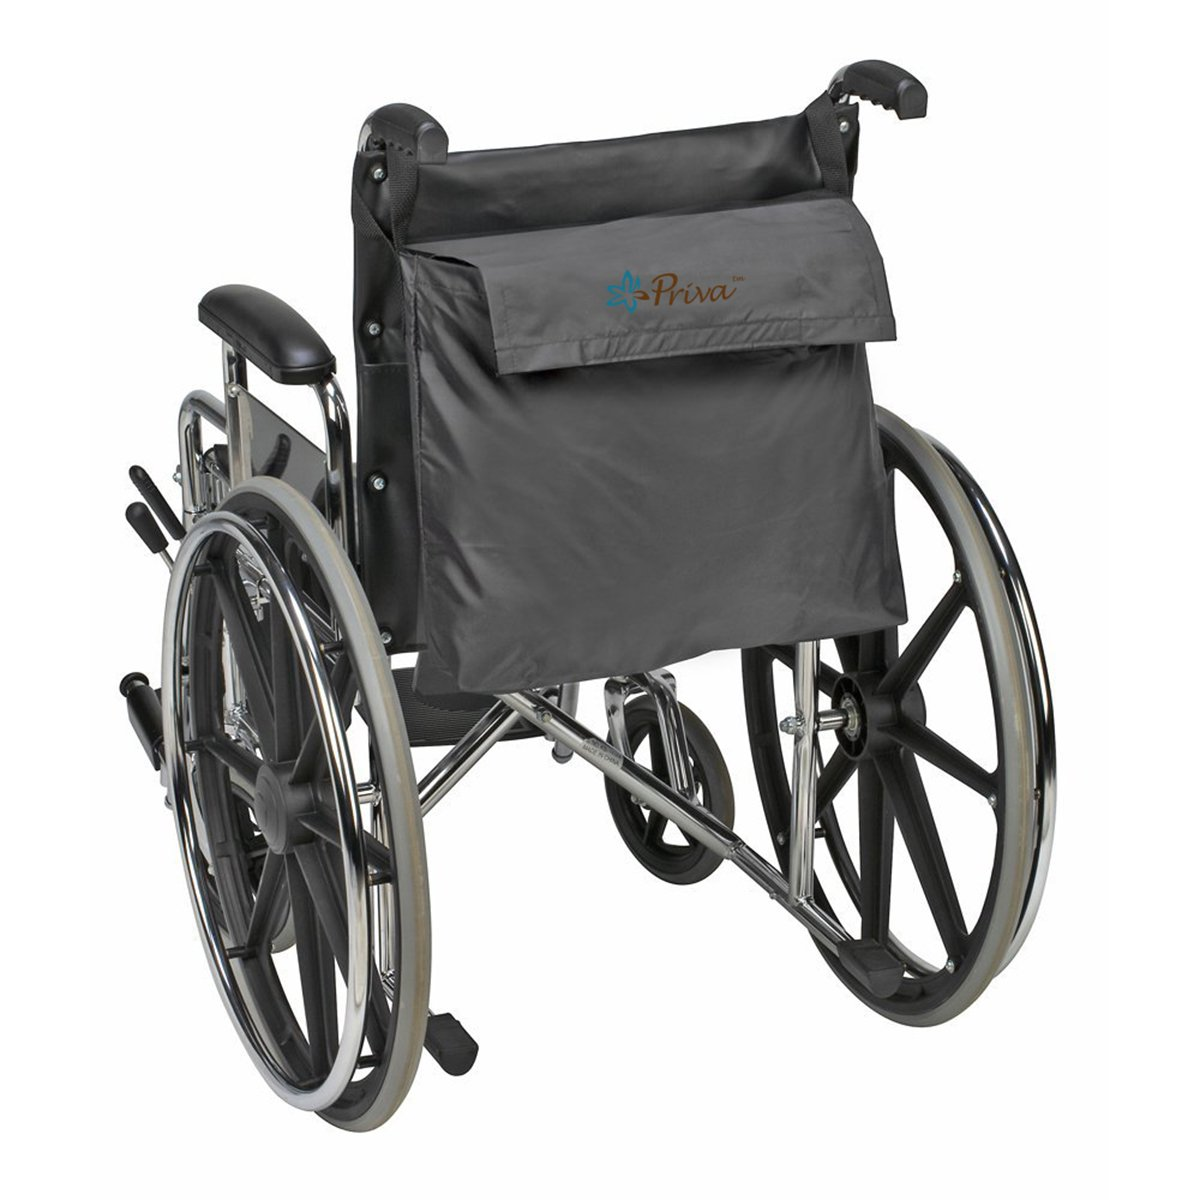 Priva Wheelchair Bag with Velcro Closure and Exterior Pocket,  19'' x 14.5'', Black